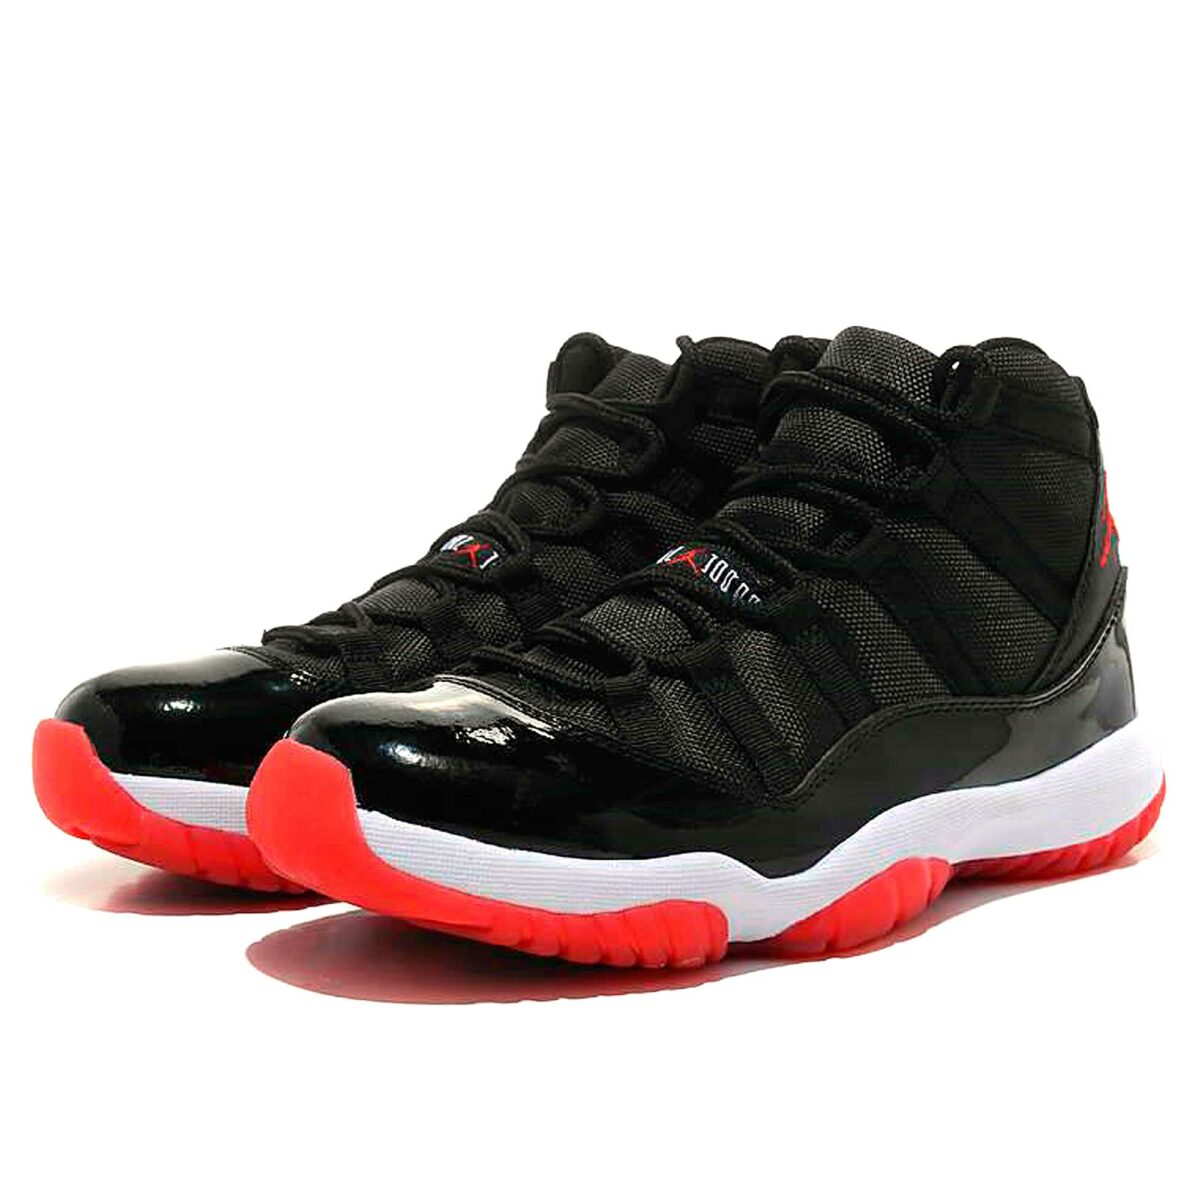 nike air Jordan 11 retro low bg black white 378038_010 купить